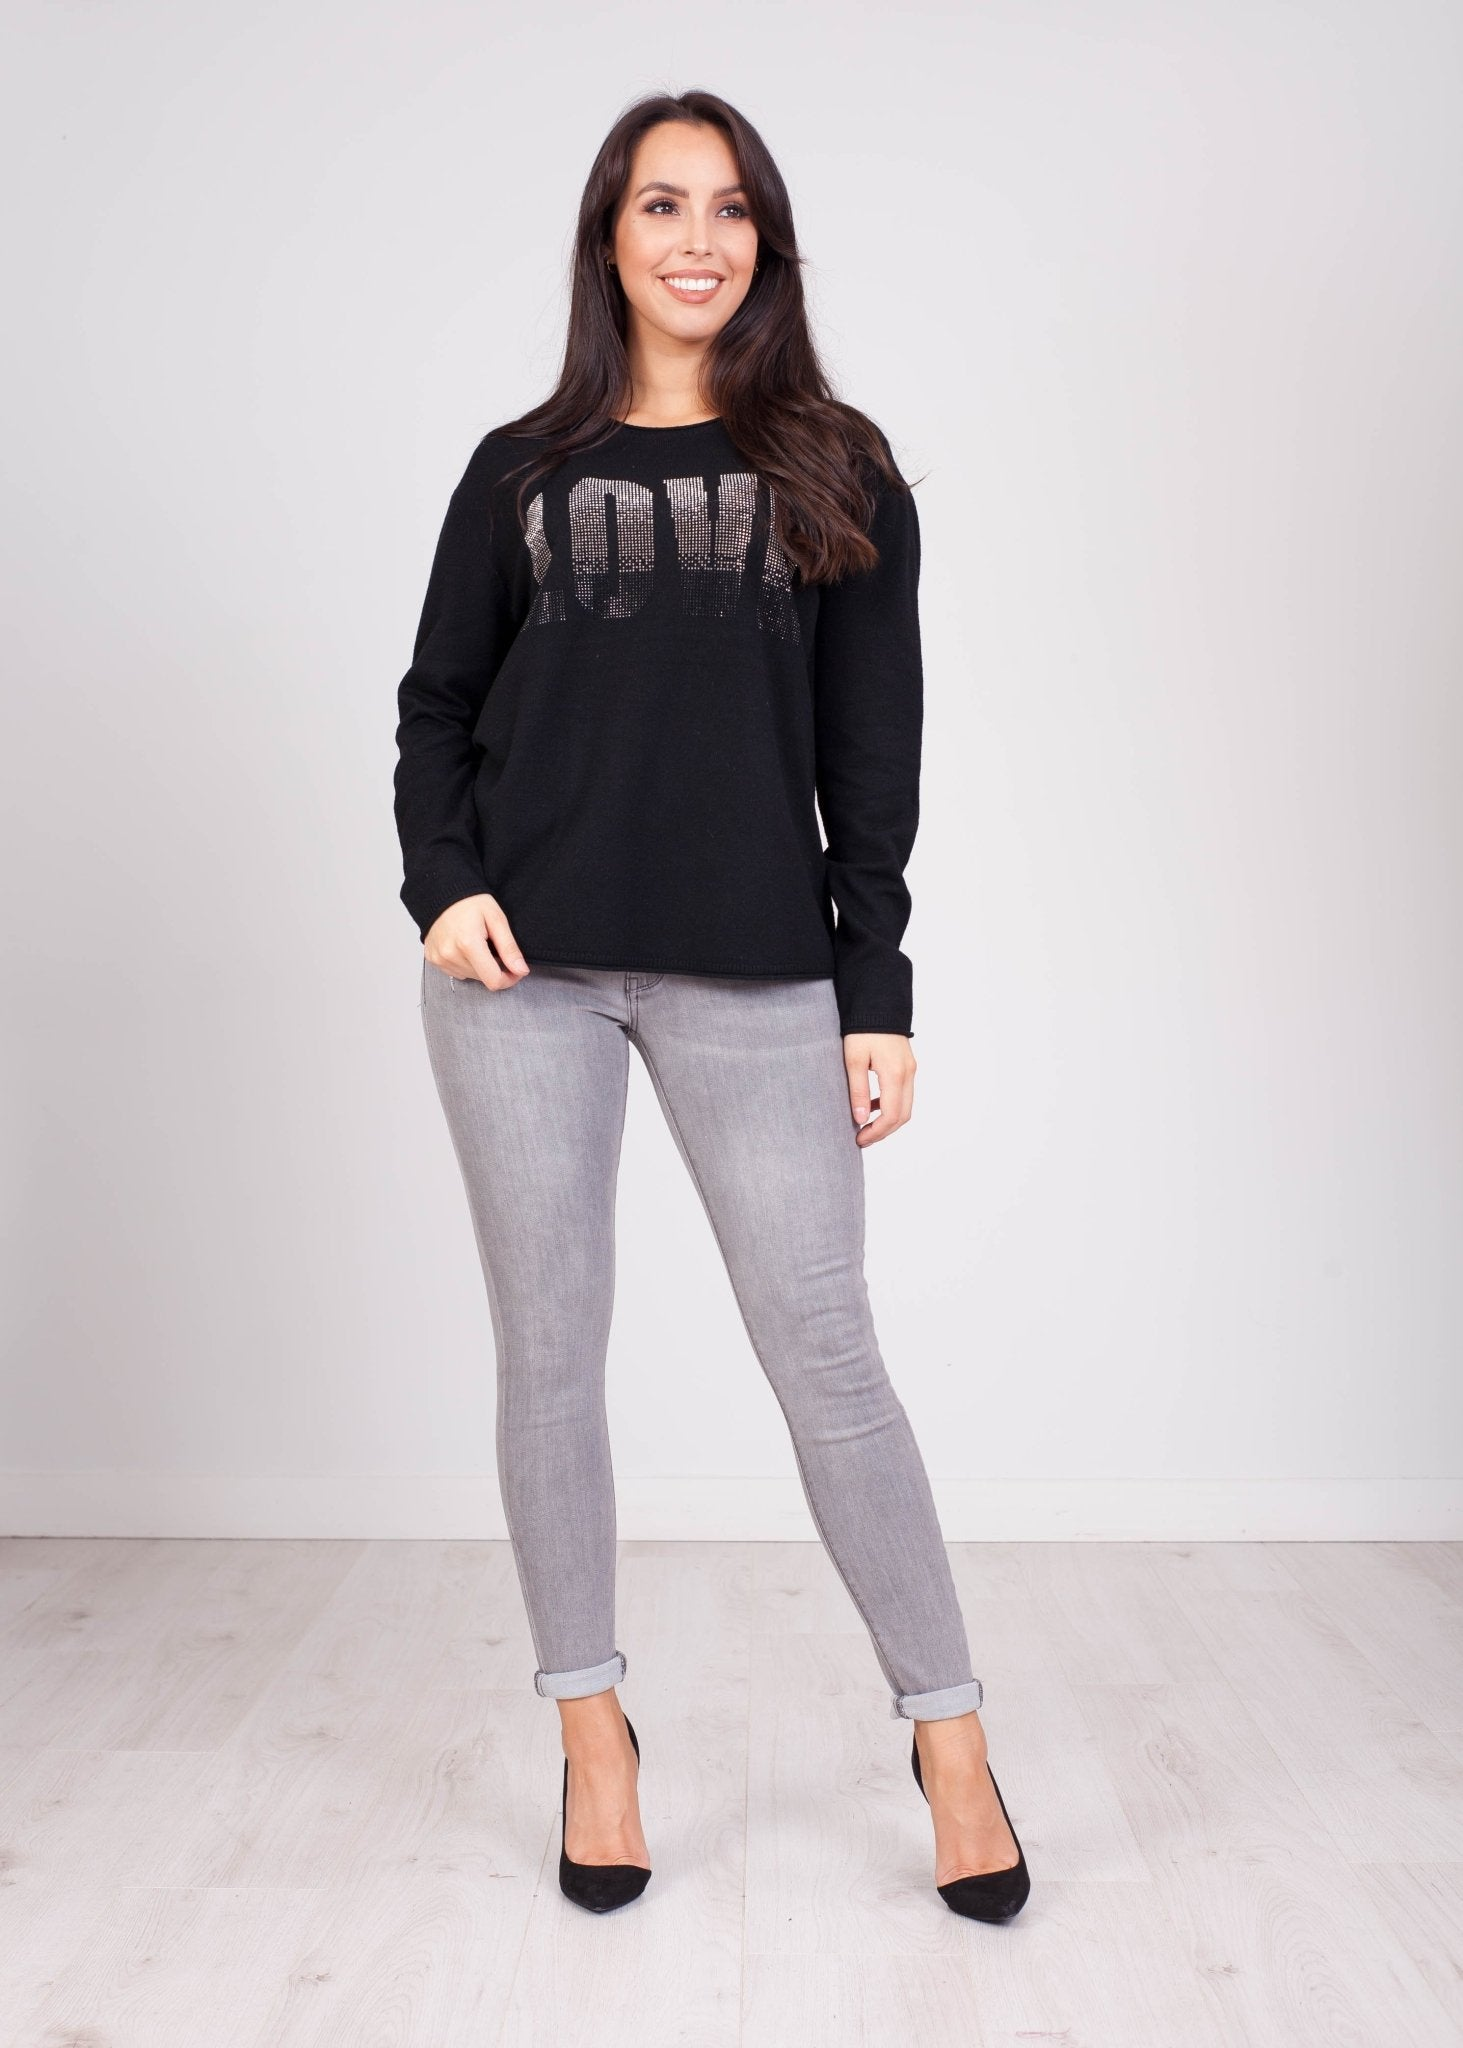 Penny Embellished Jumper In Black - The Walk in Wardrobe